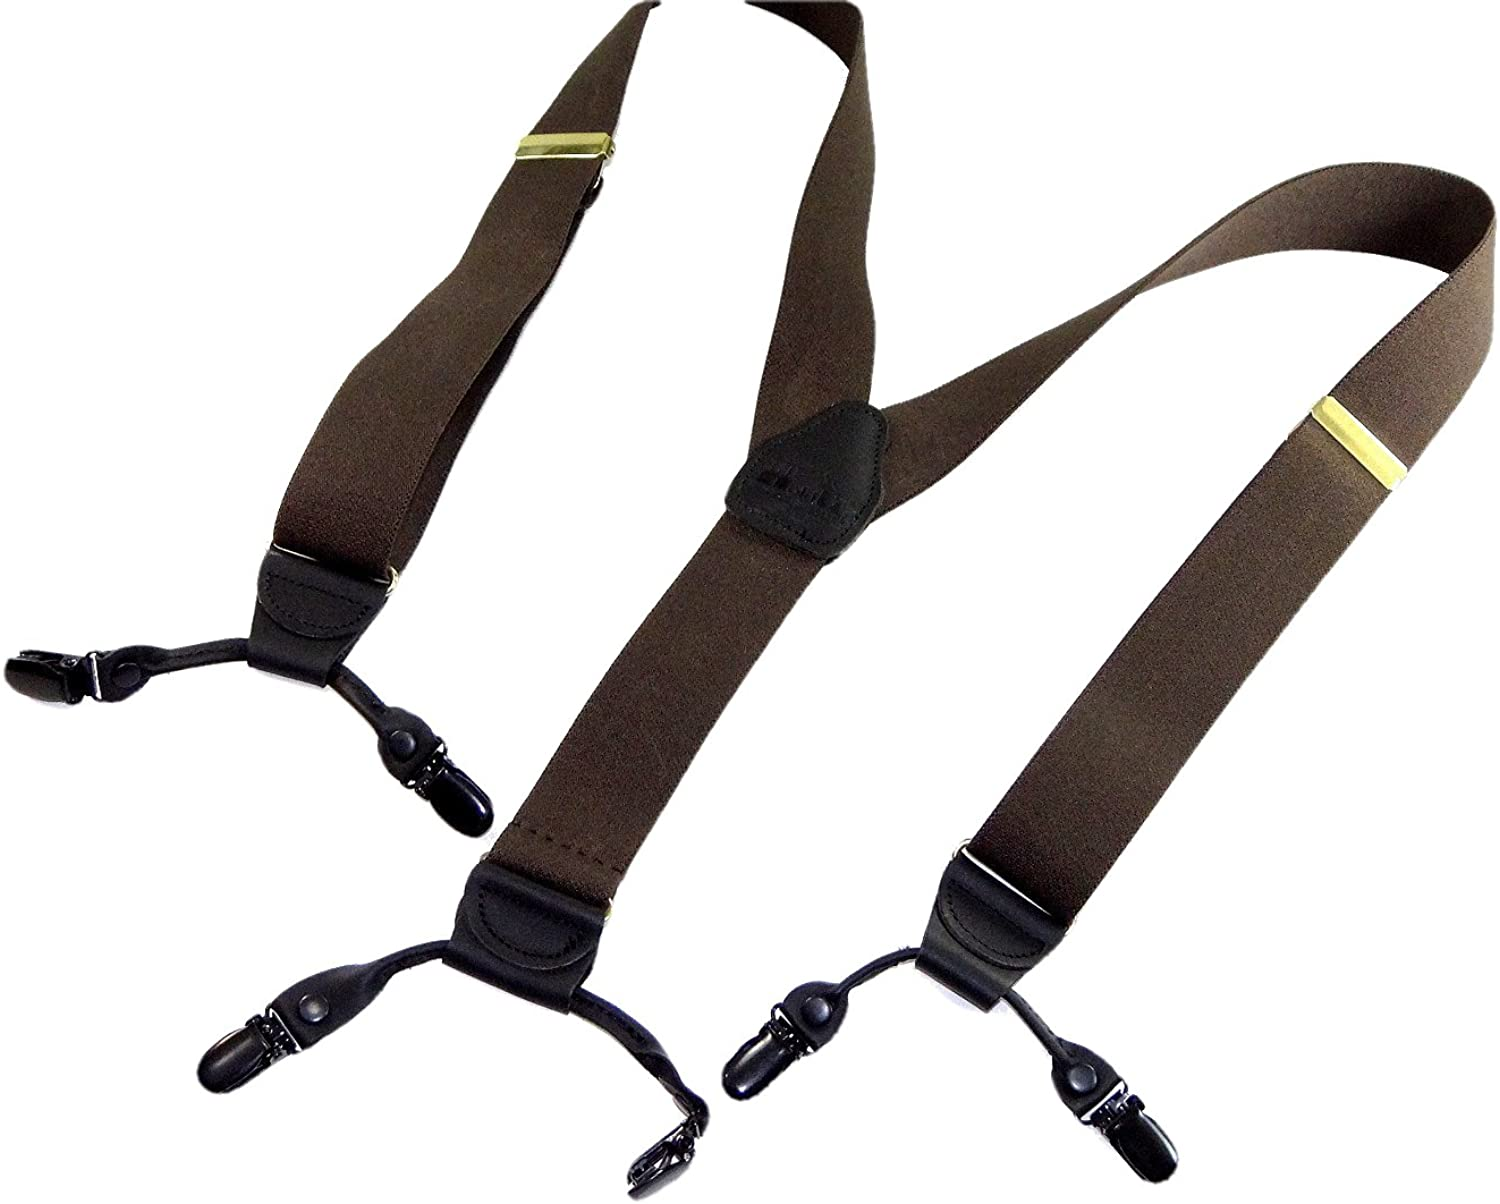 Holdup Suspender Brand Dark Java Brown Colored Casual Series Double-Up Suspenders with black no-slip patented clips